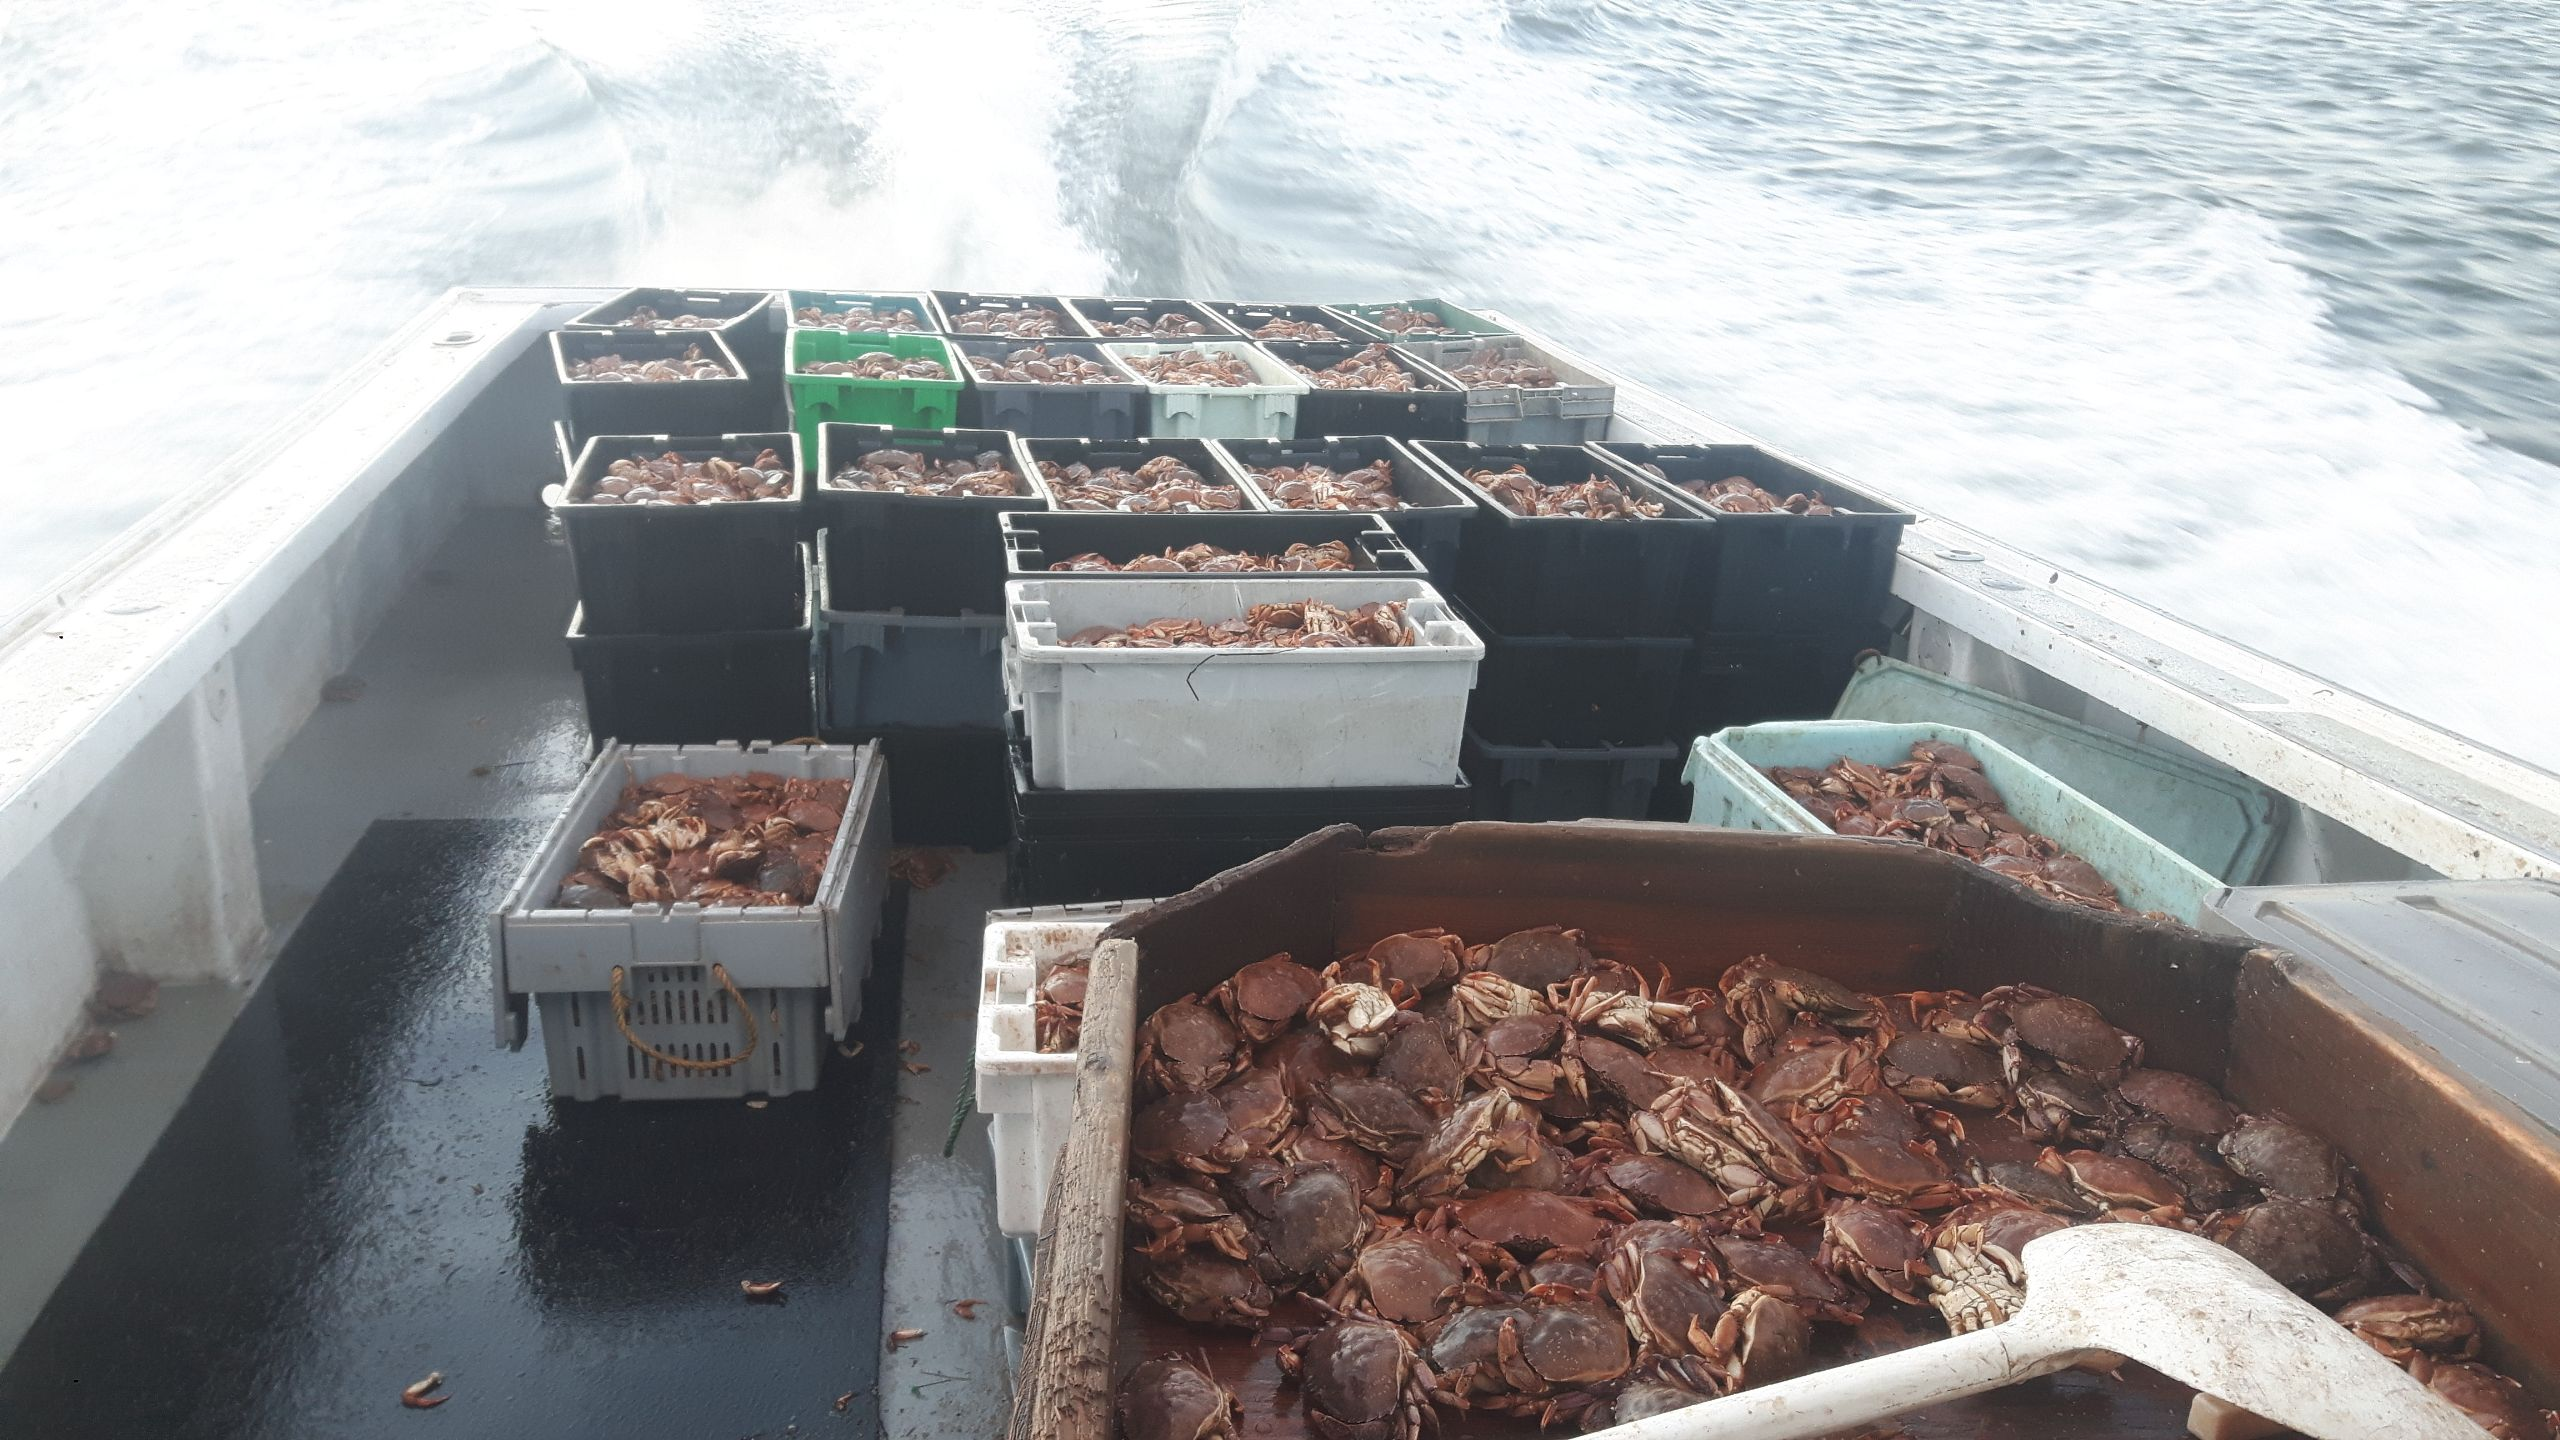 The back of a fishing boat on the water filled with containers of caught crabs.